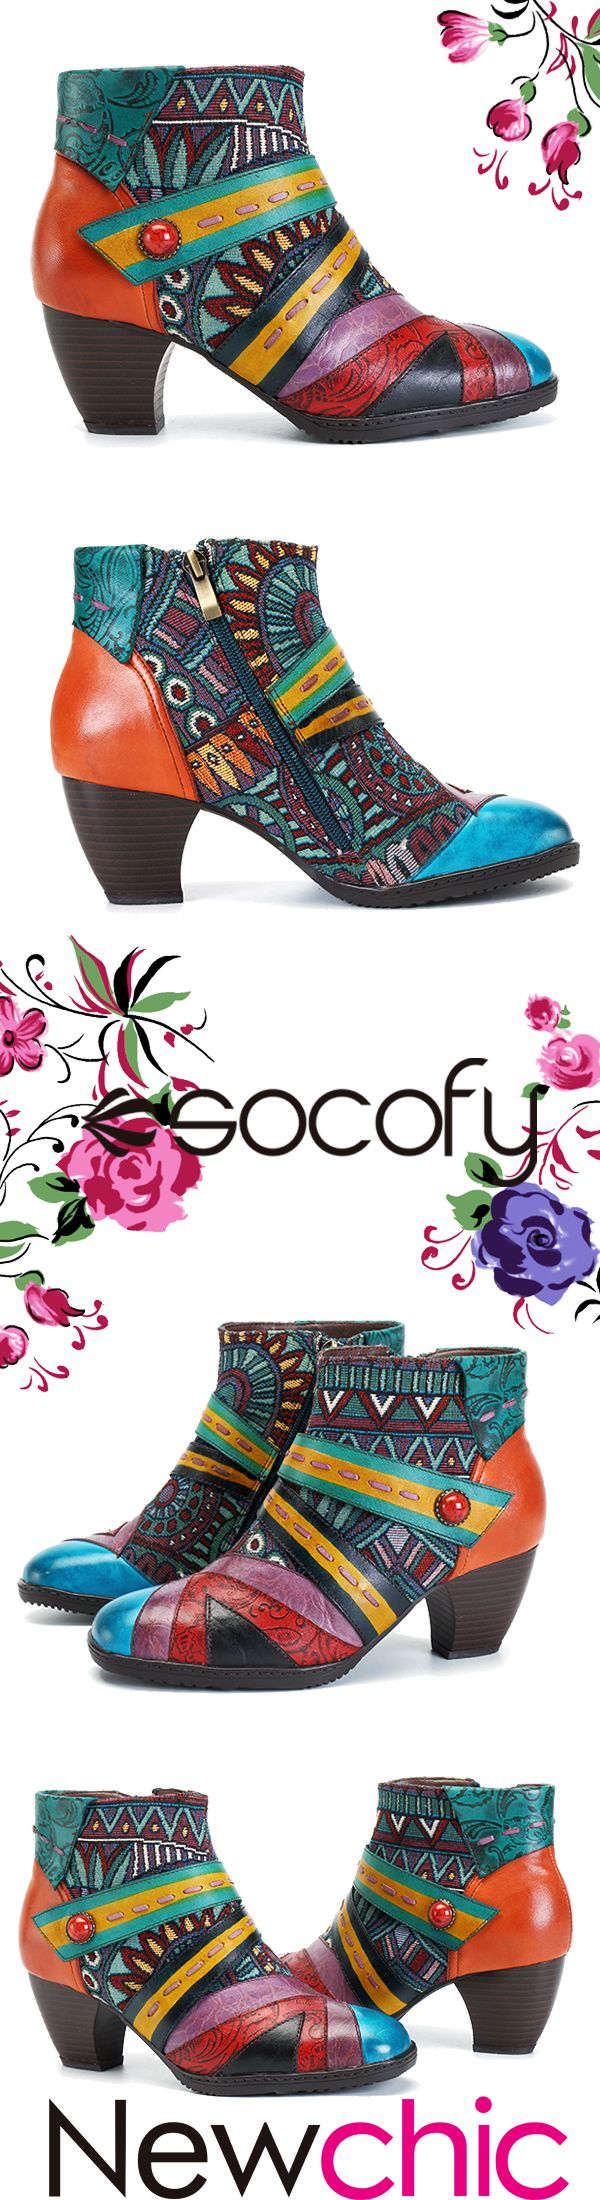 US$62.74 SOCOFY Bohemian Color Match Splicing Pattern Zipper Ankle Leather Boots